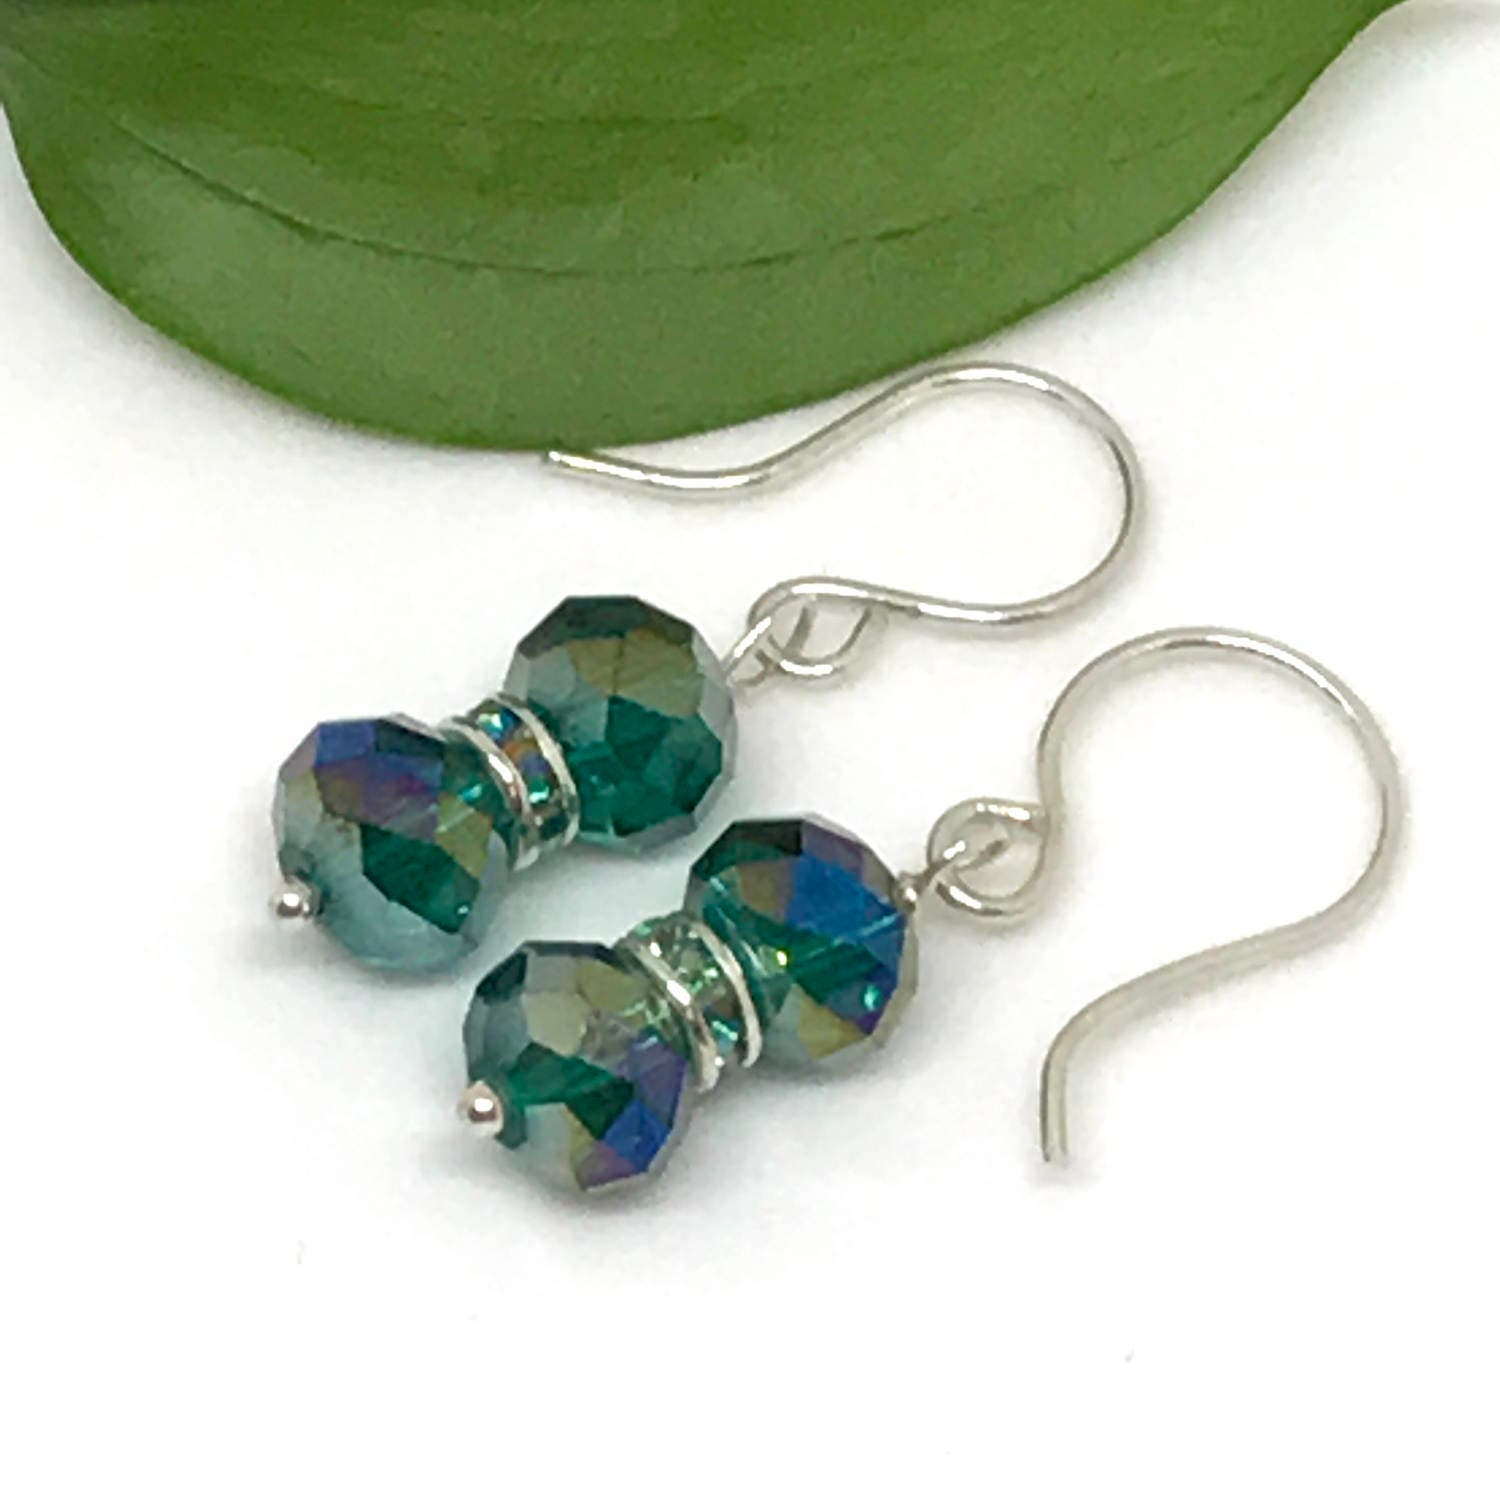 Green Earrings Sterling Silver Emerald Green Gift For Her